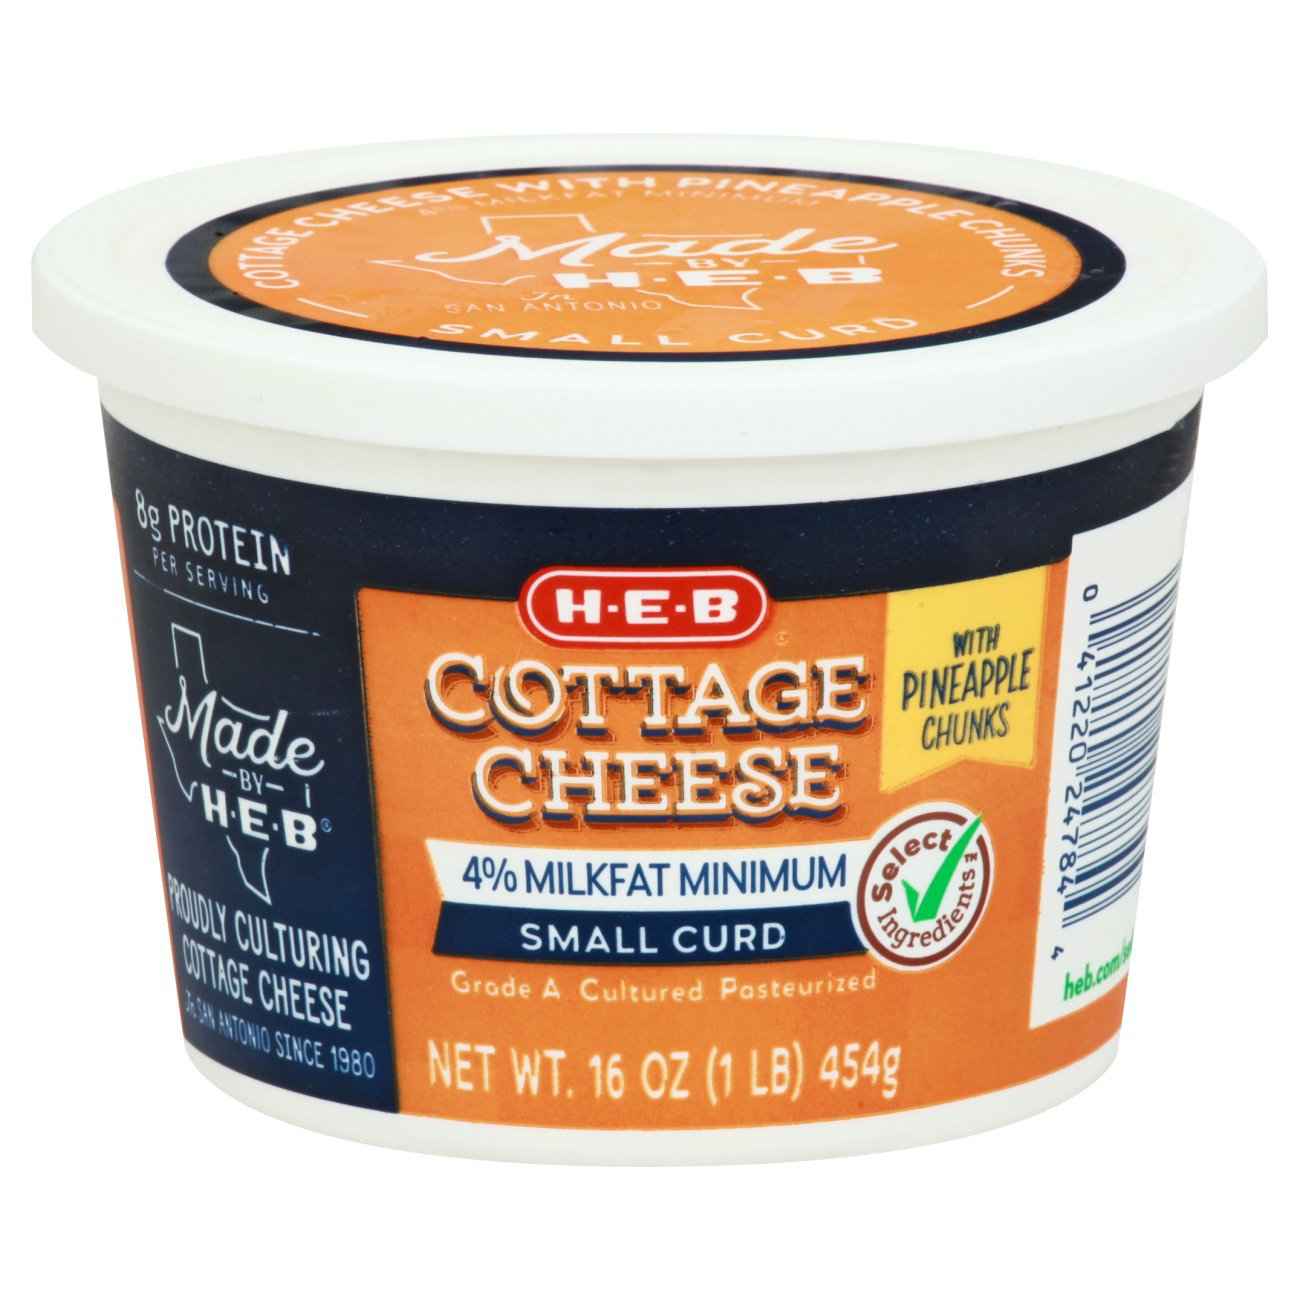 HEB Cottage Cheese With Pineapple Chunks Shop Cottage Cheese at HEB